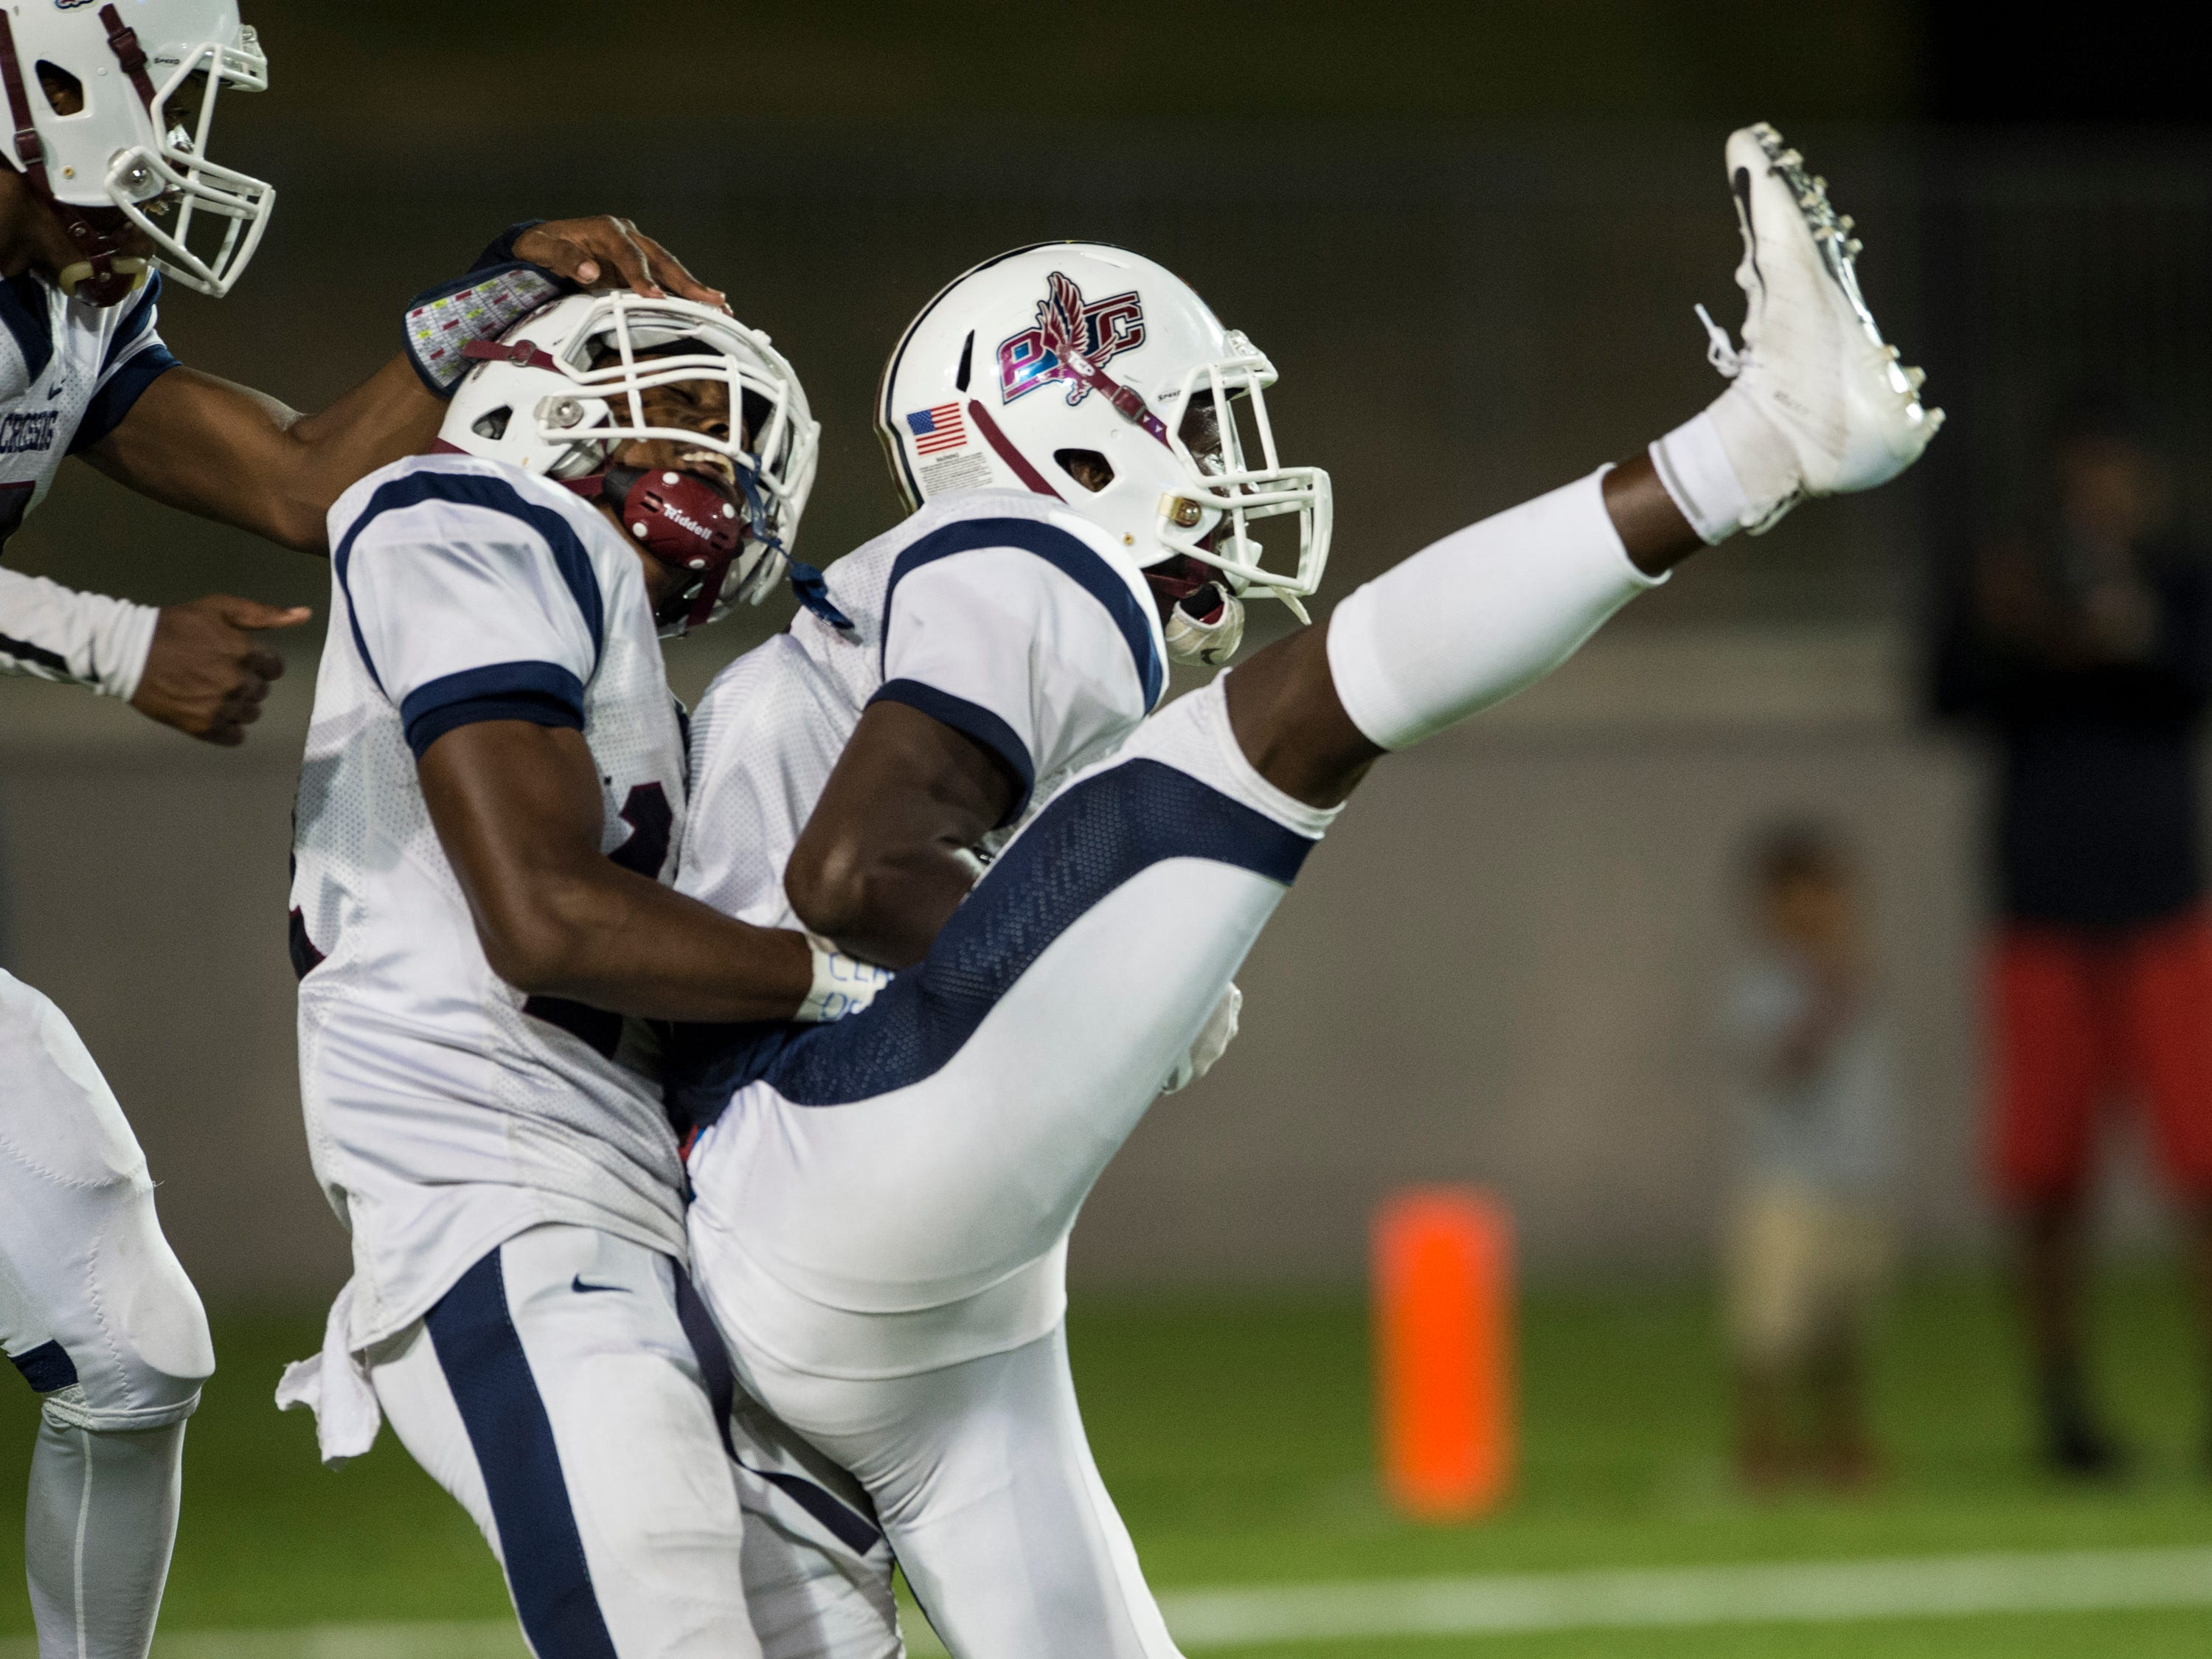 Park Crossing's Grant Dubose (2) celebrates after catching a touchdown pass at Cramton Bowl in Montgomery, Ala., on Friday, Sept. 21, 2018. Lanier defeated Park Crossing 35-28.